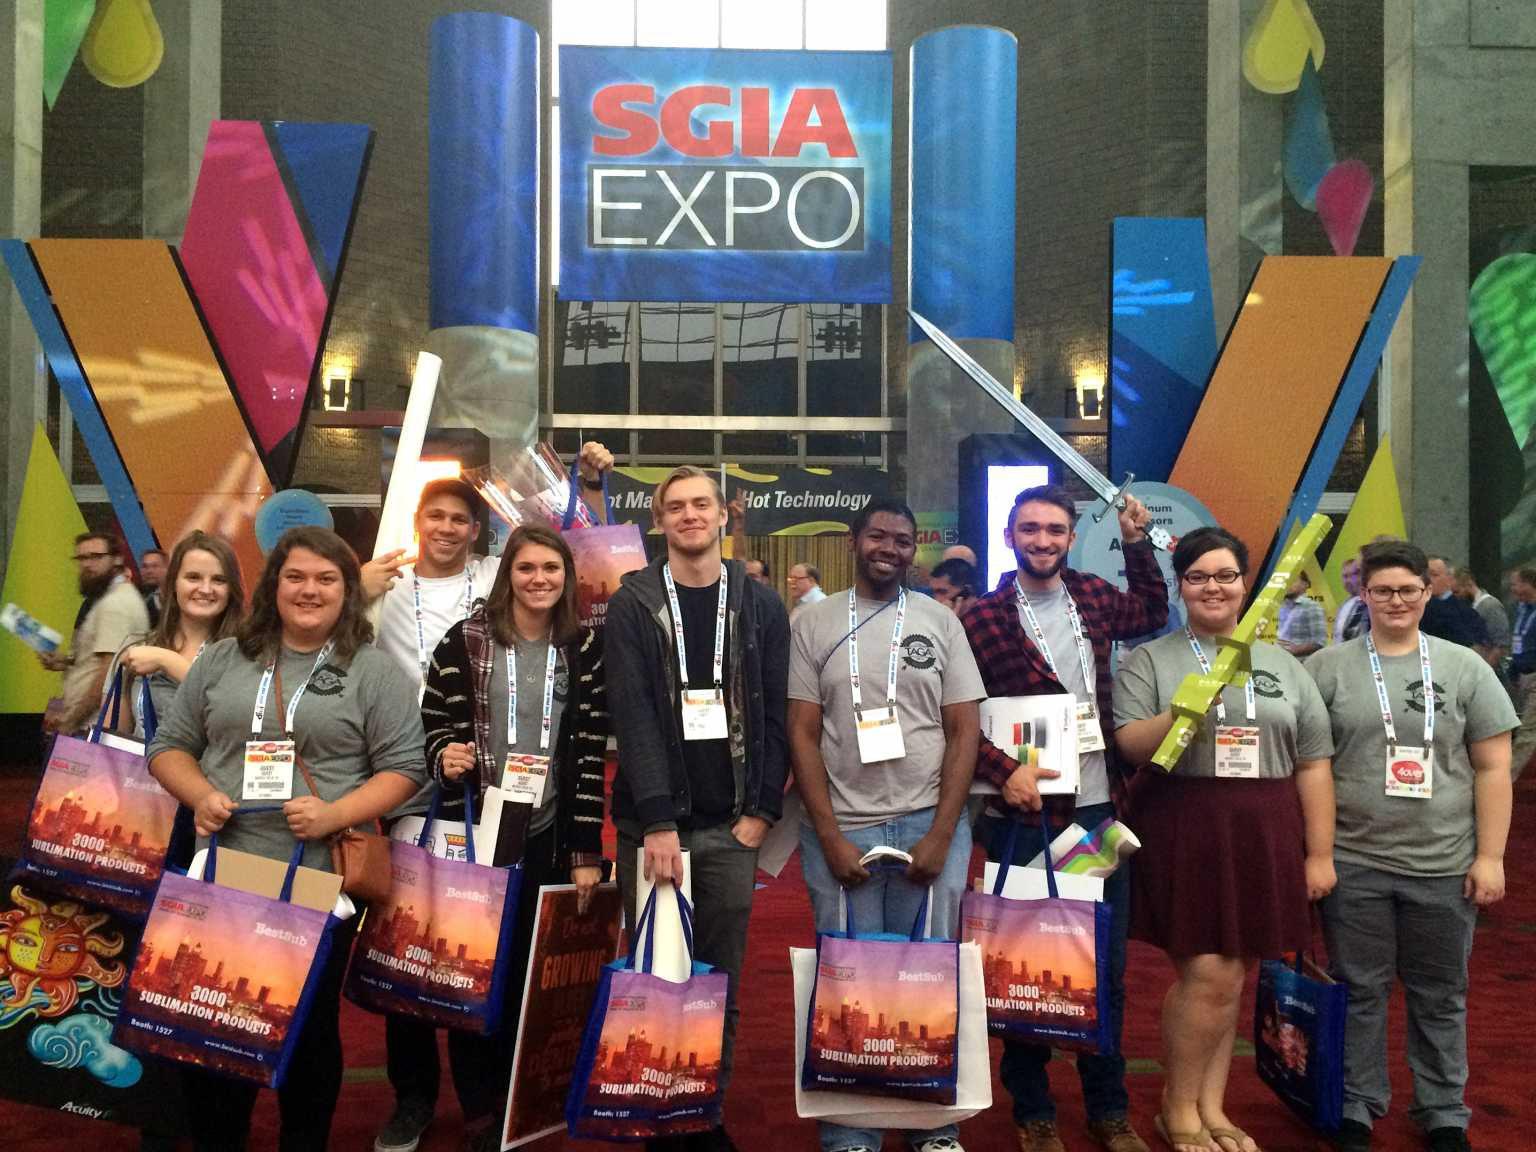 Students at SGIA Expo 2015